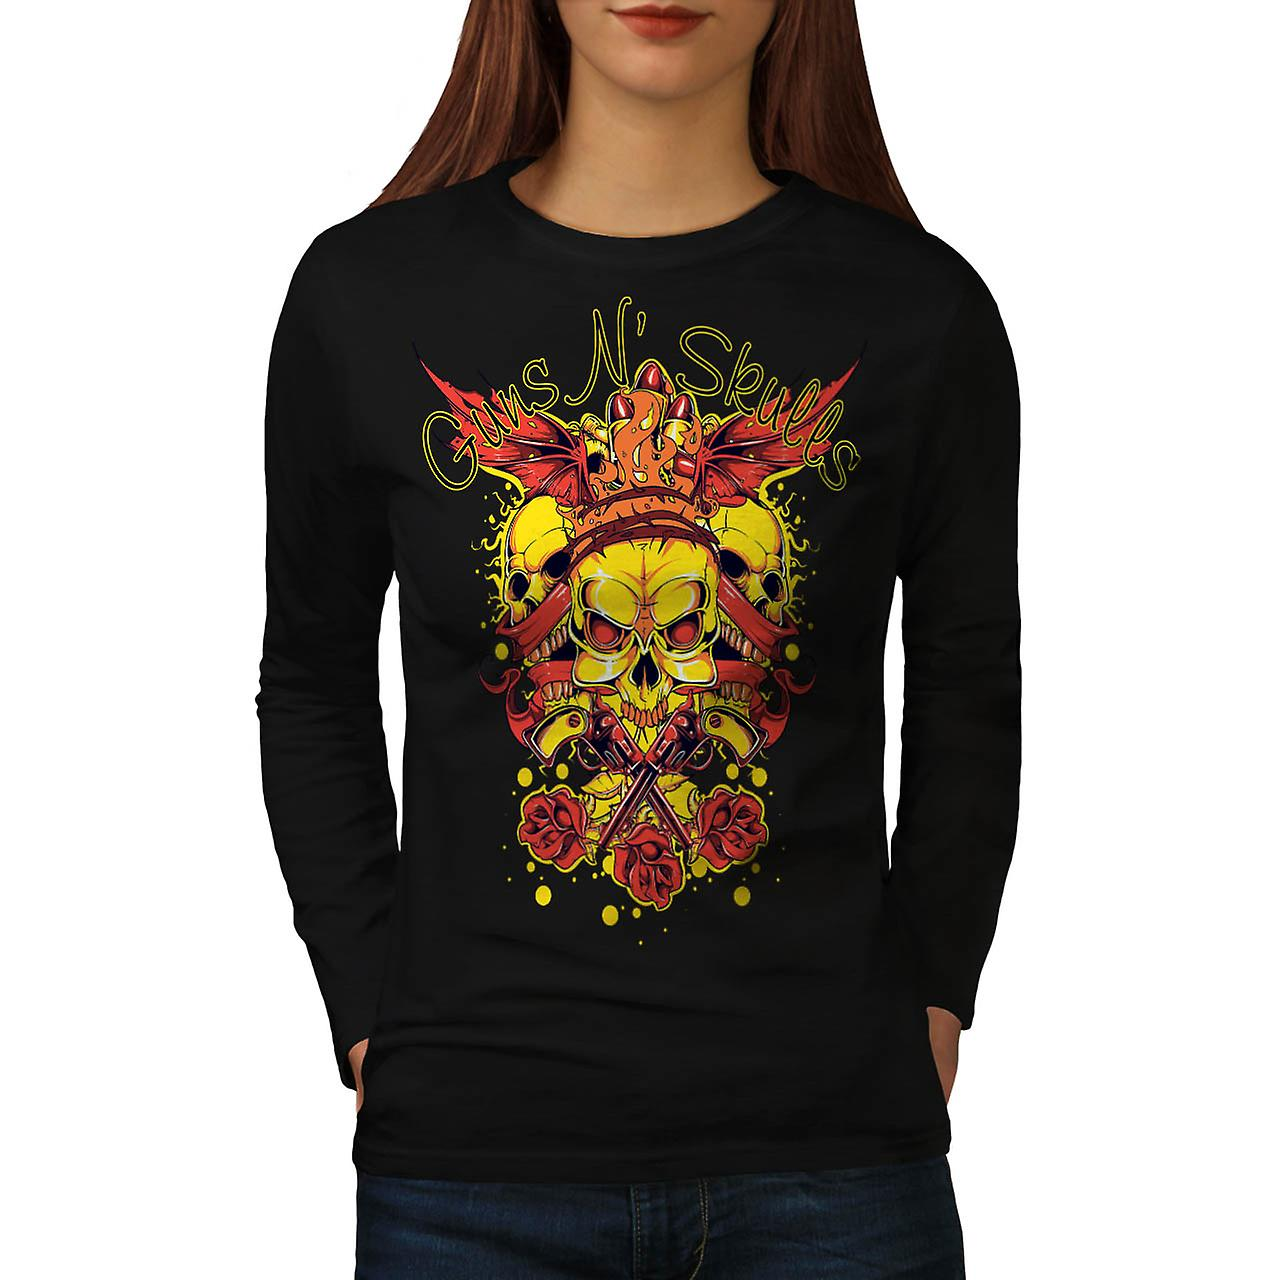 Guns And Skulls Brawl King Demon Women Black Long Sleeve T-shirt | Wellcoda